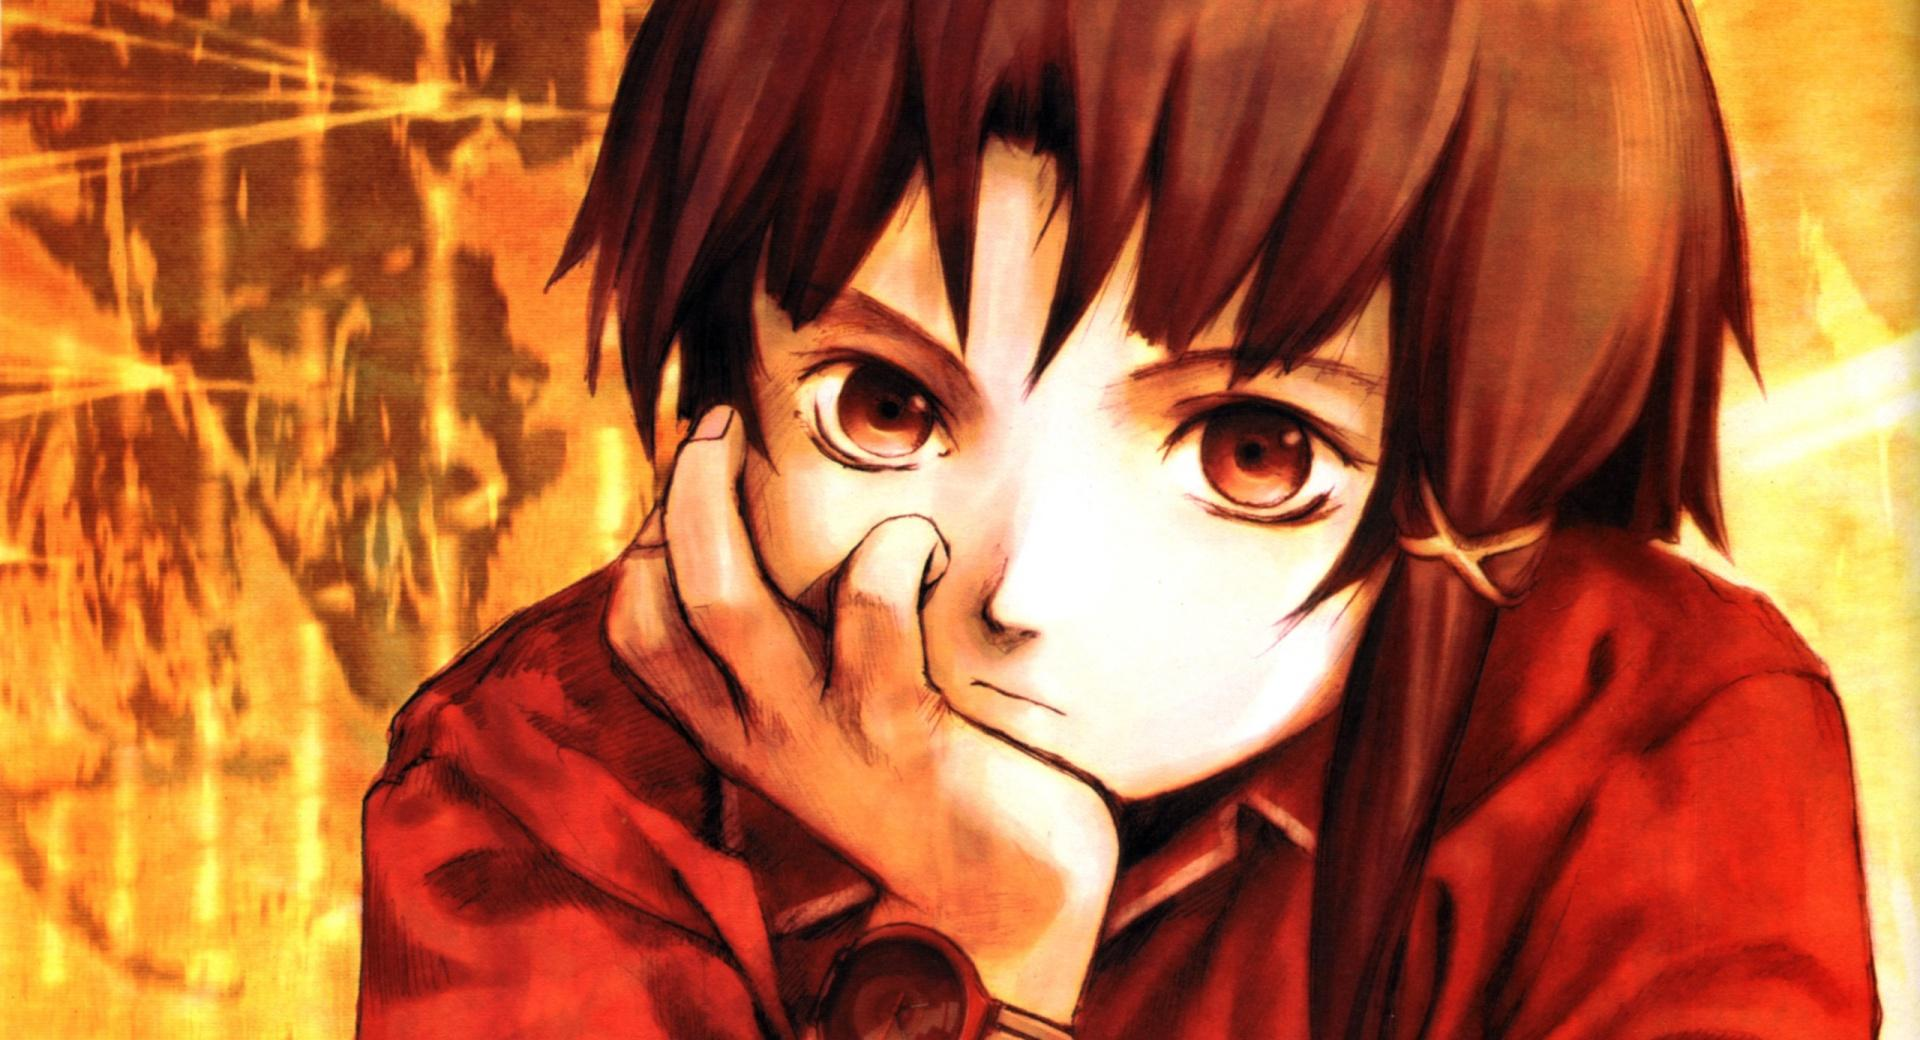 Serial Experiments Lain Anime wallpapers HD quality